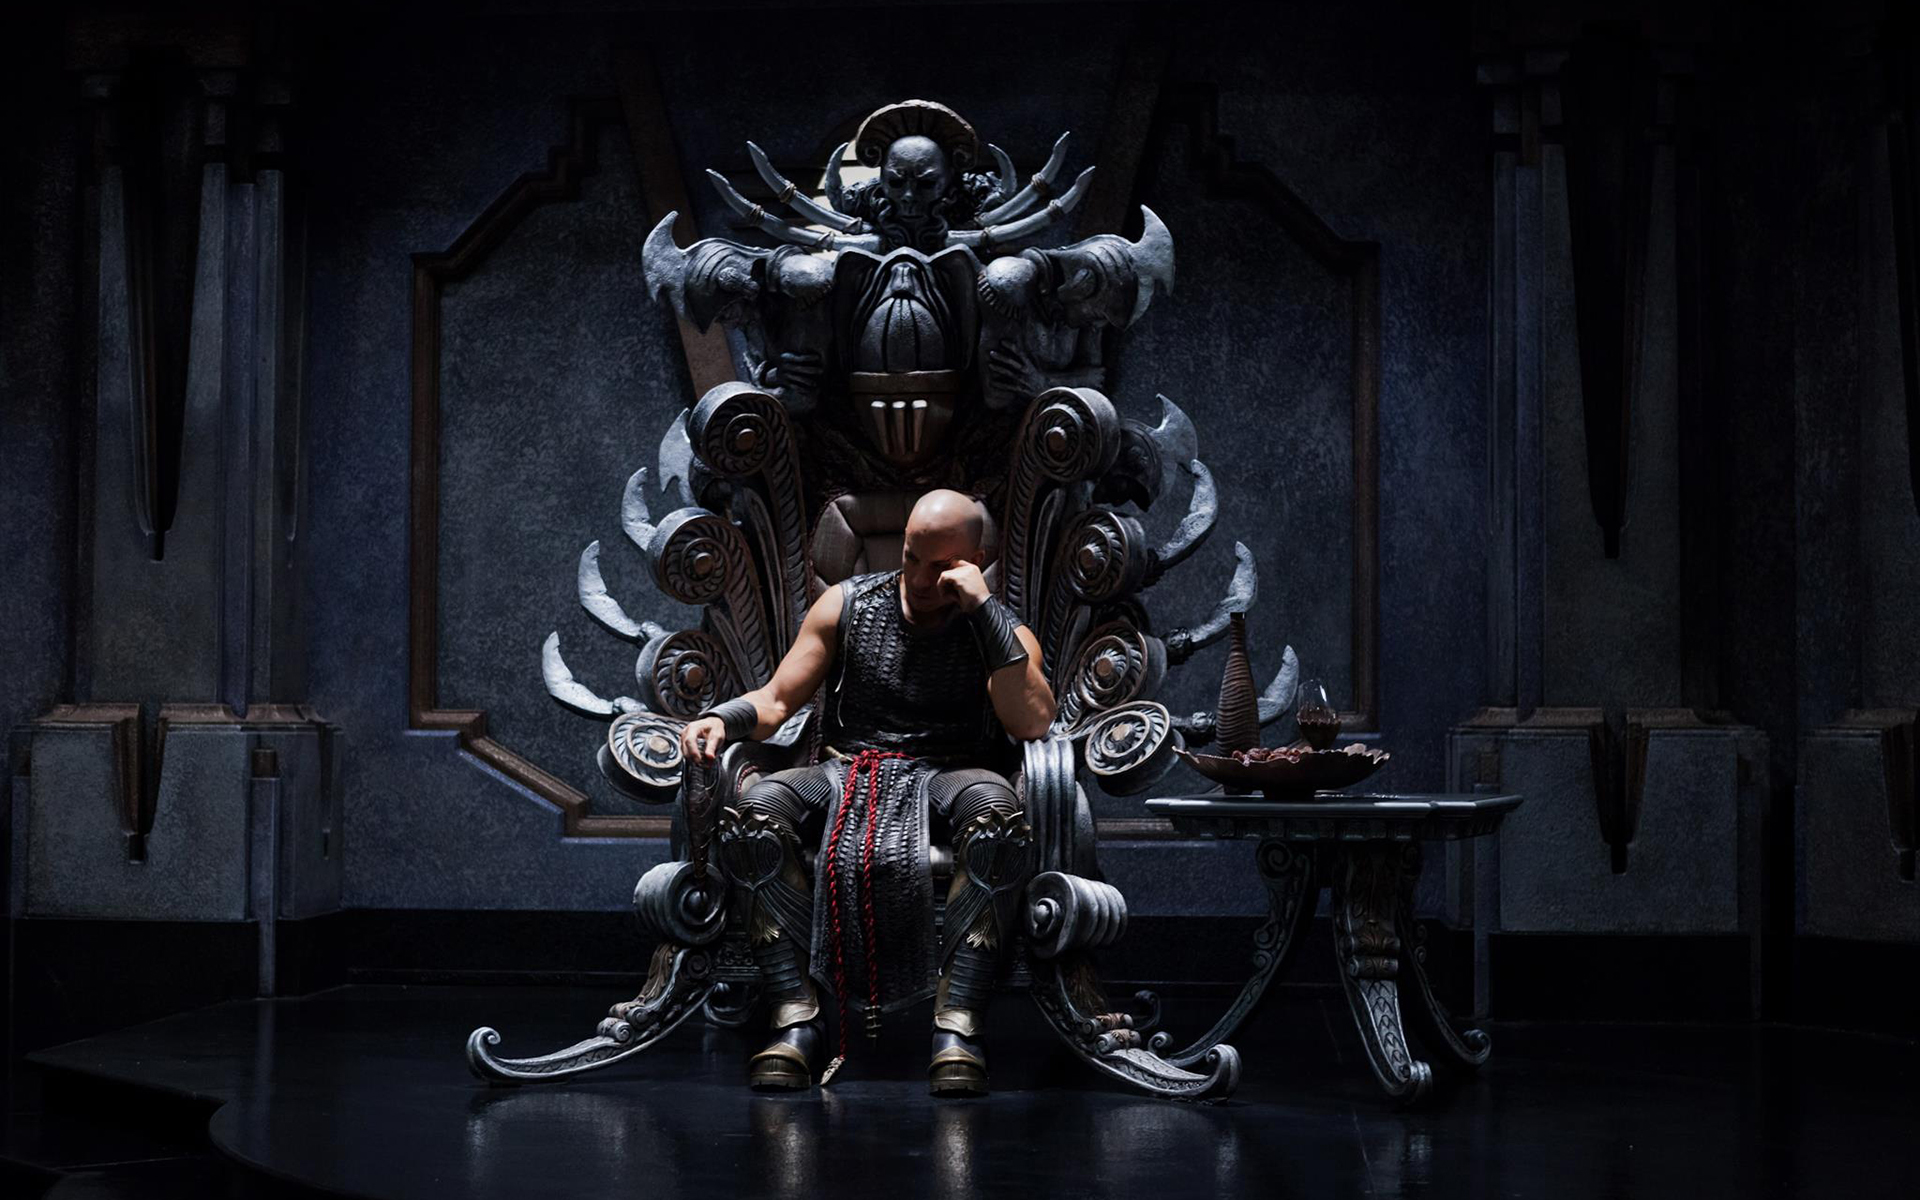 the chair fic grey scoop dining chairs vin diesel riddick throne wallpaper 1920x1200 46436